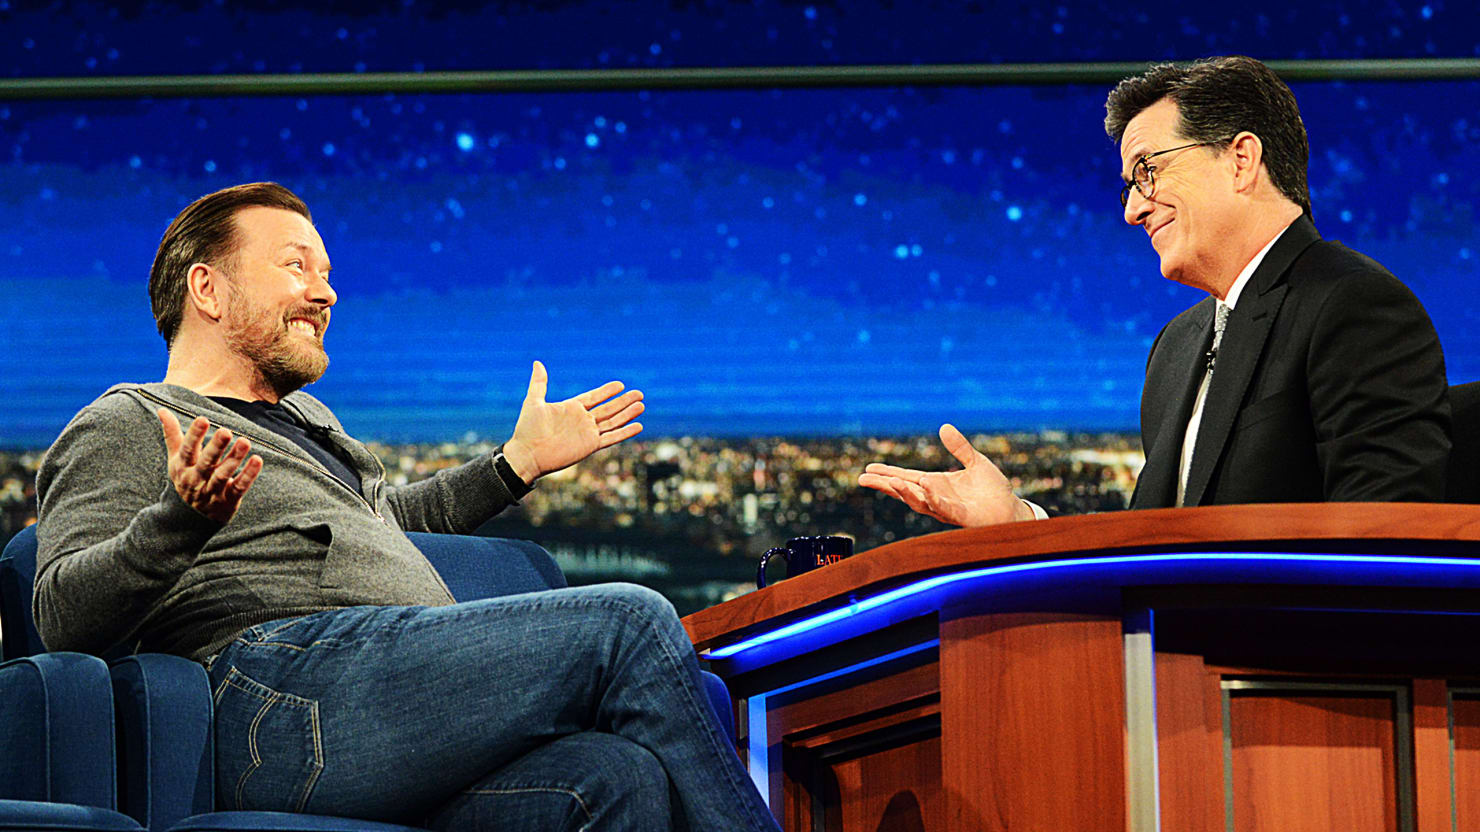 Stephen Colbert and Ricky Gervais Debate the Existence of God